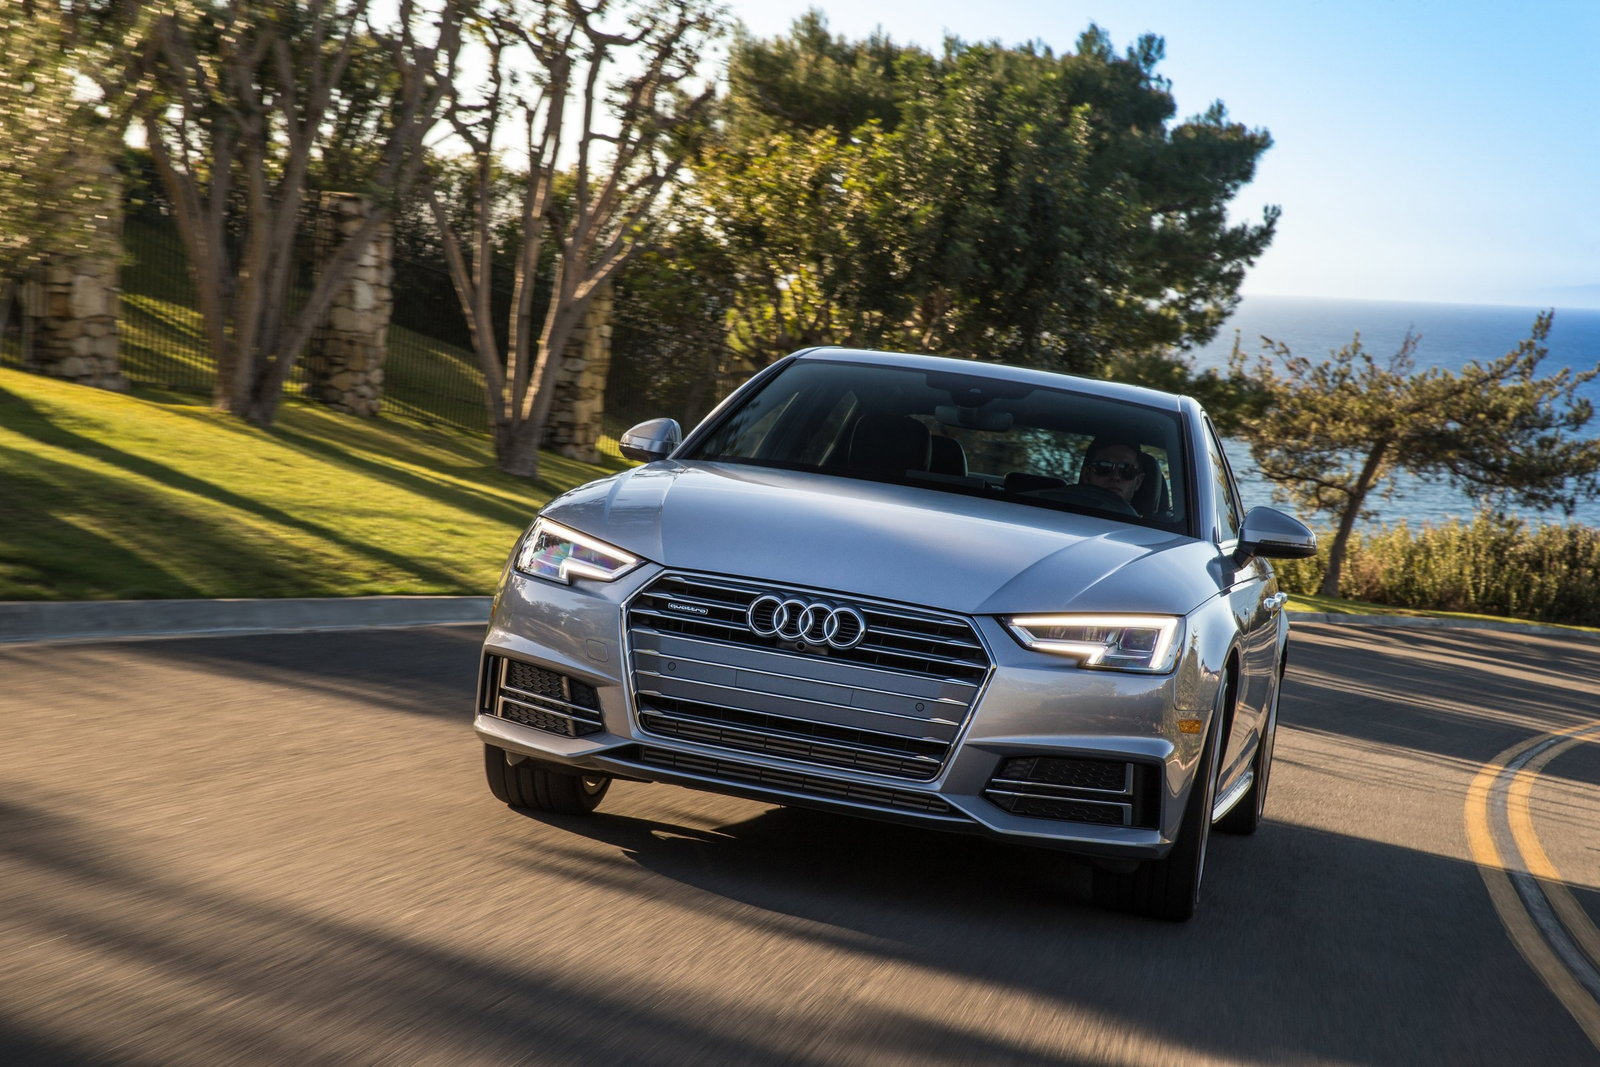 2017 Audi A4 Deals Prices Incentives  Leases Overview  CarsDirect